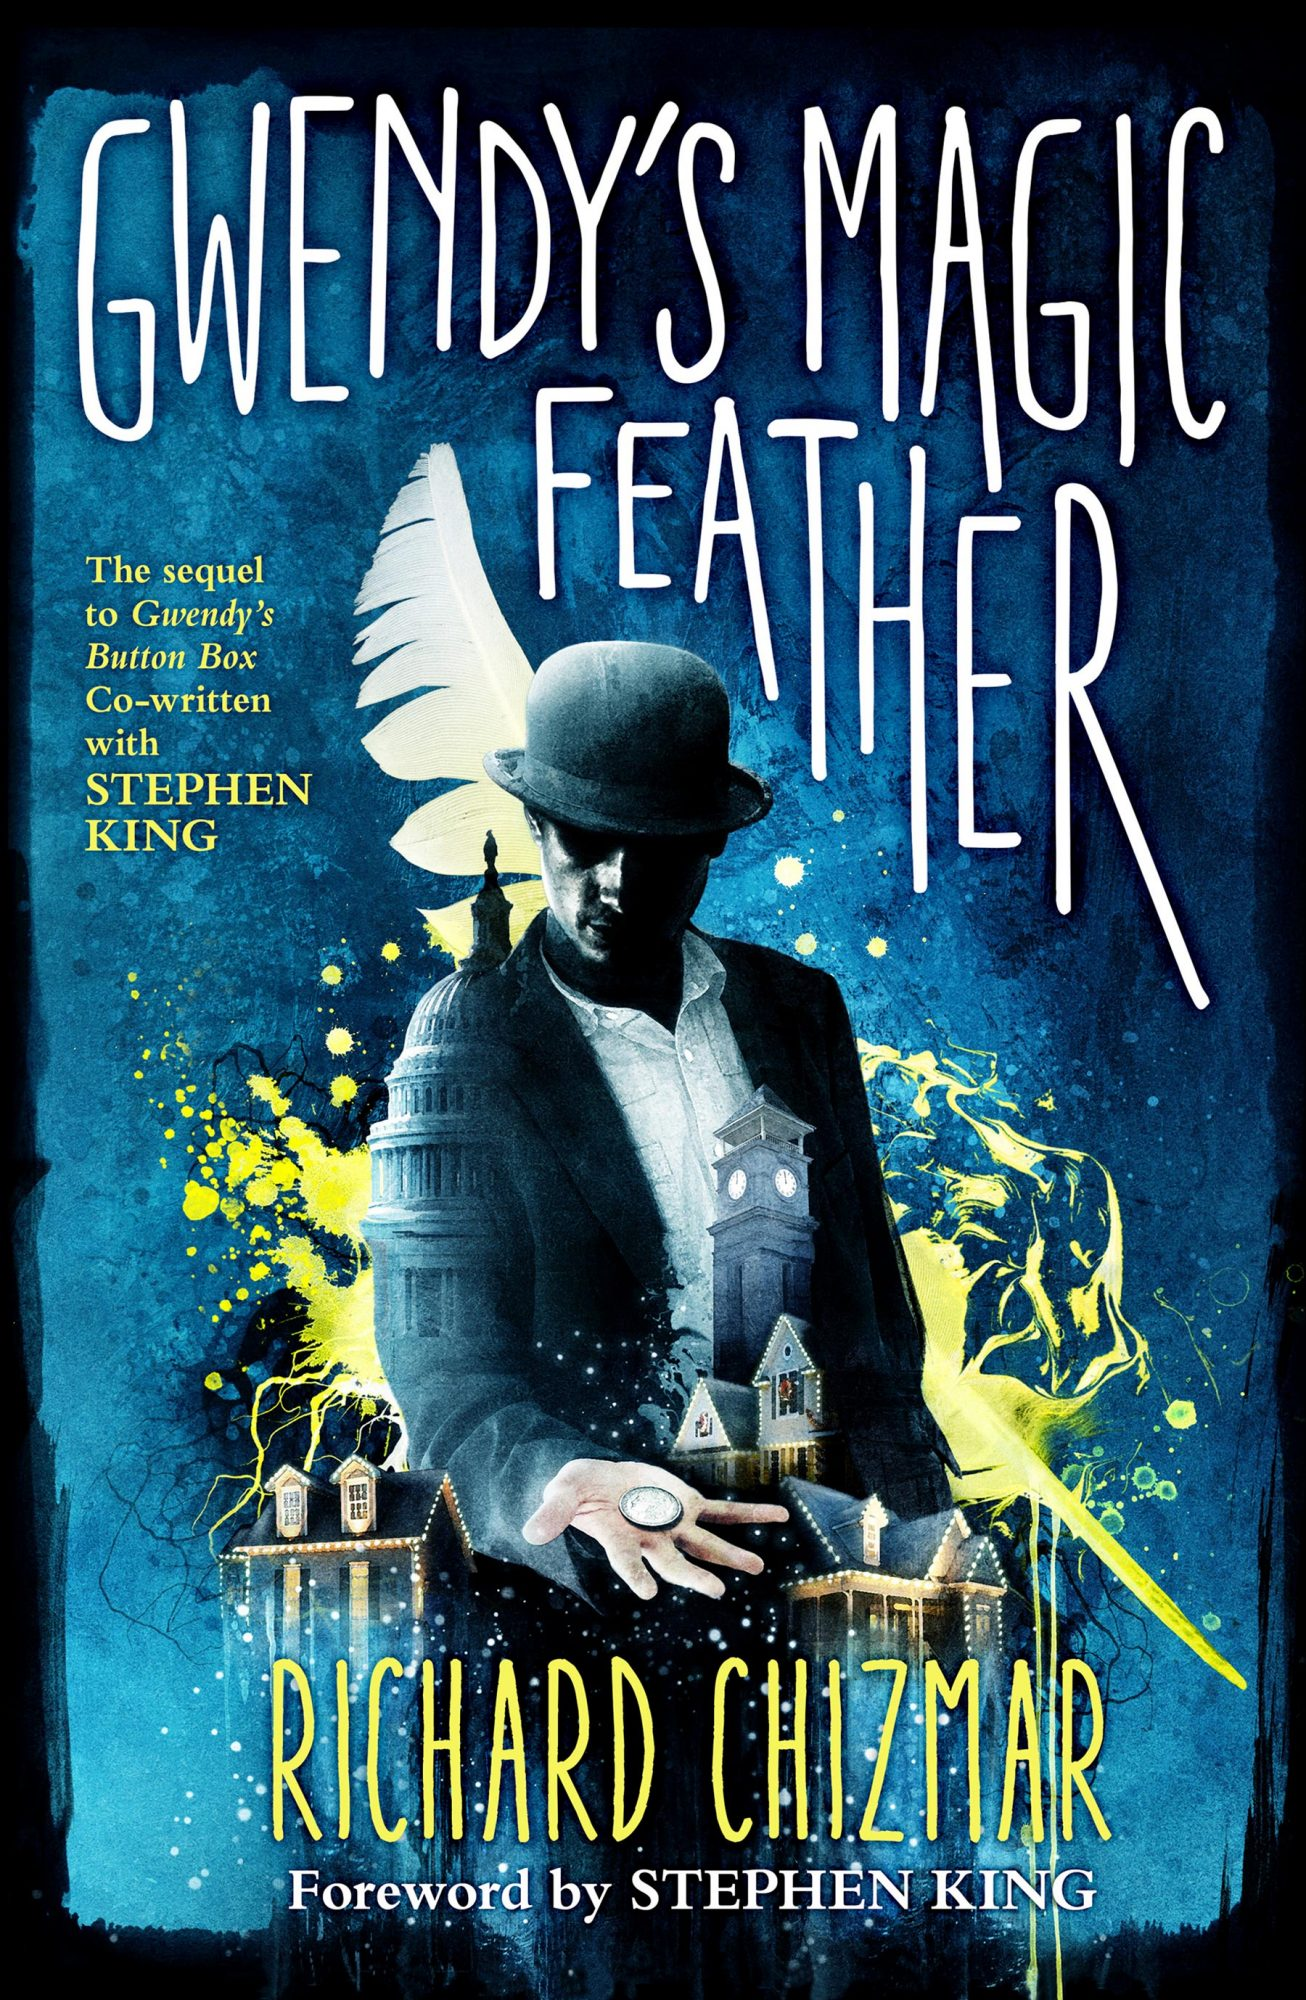 Gwendy's Magic Feather CR: Cemetery Dance Publications